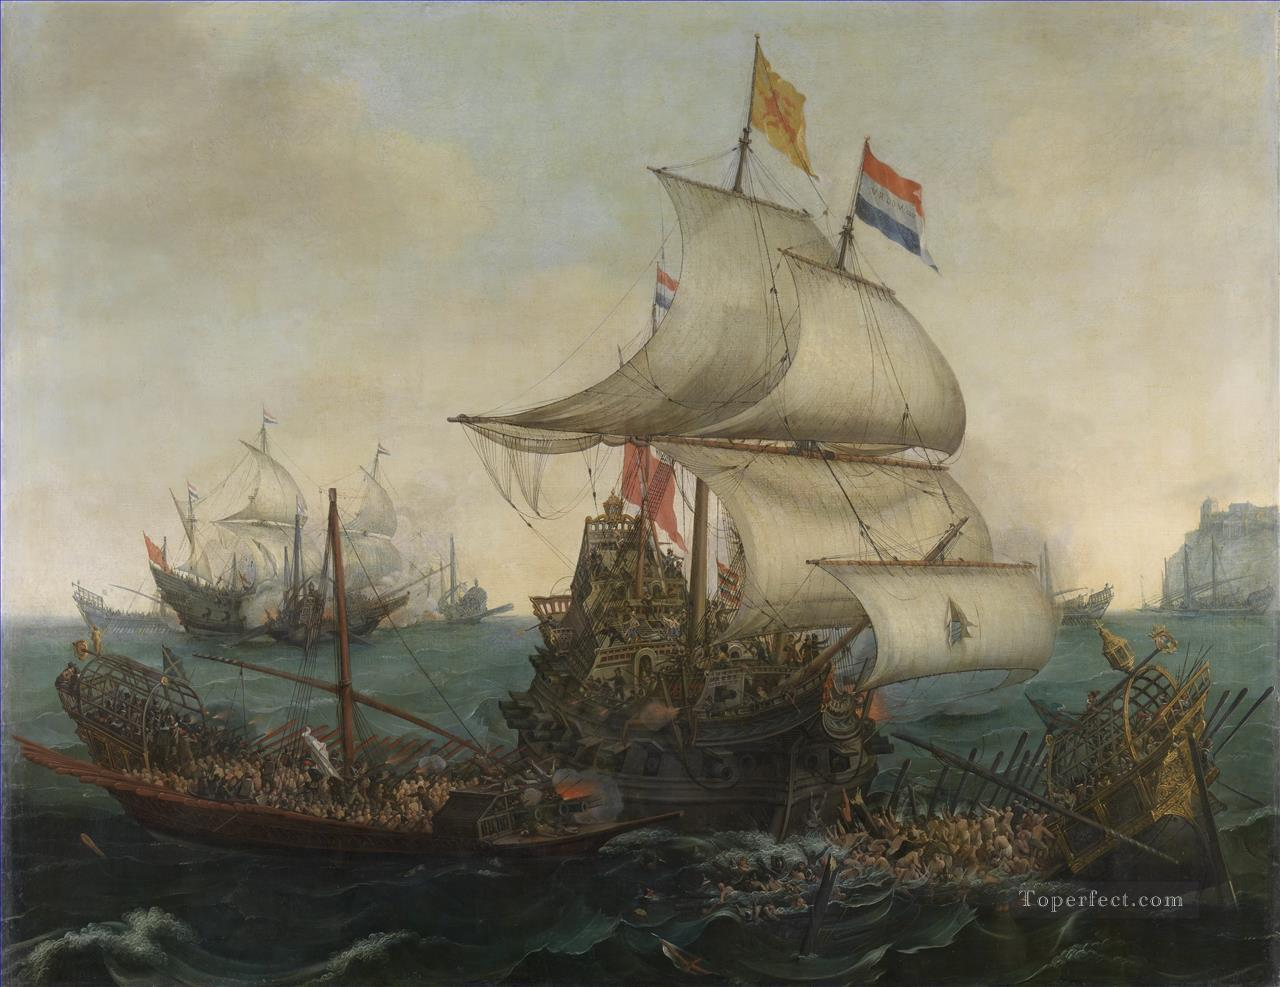 Vroom Hendrick Cornelisz Dutch Ships Ramming Spanish Galleys off the Flemish Coast in 1602 Naval Battle Oil Paintings